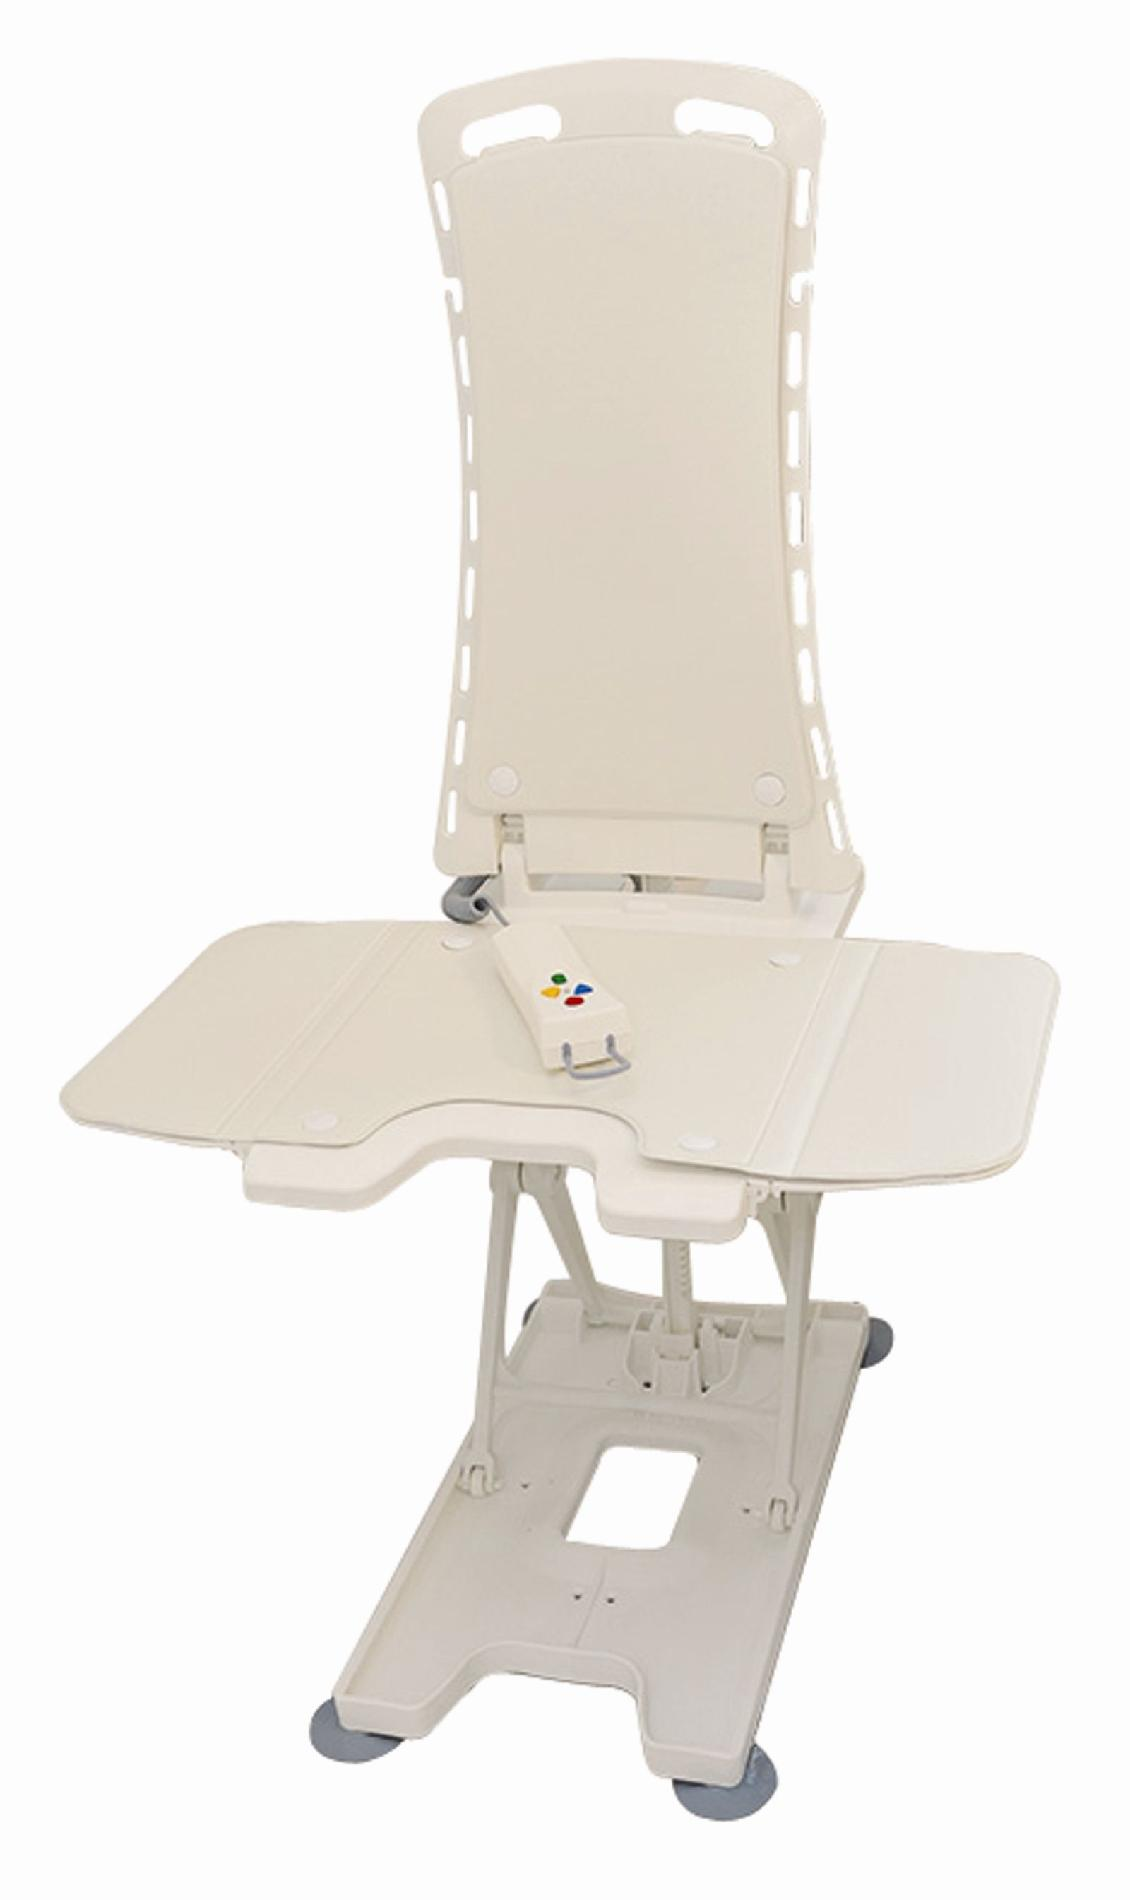 Bath Chair Lift Drive Medical Bellavita Auto Bath Tub Chair Seat Lift